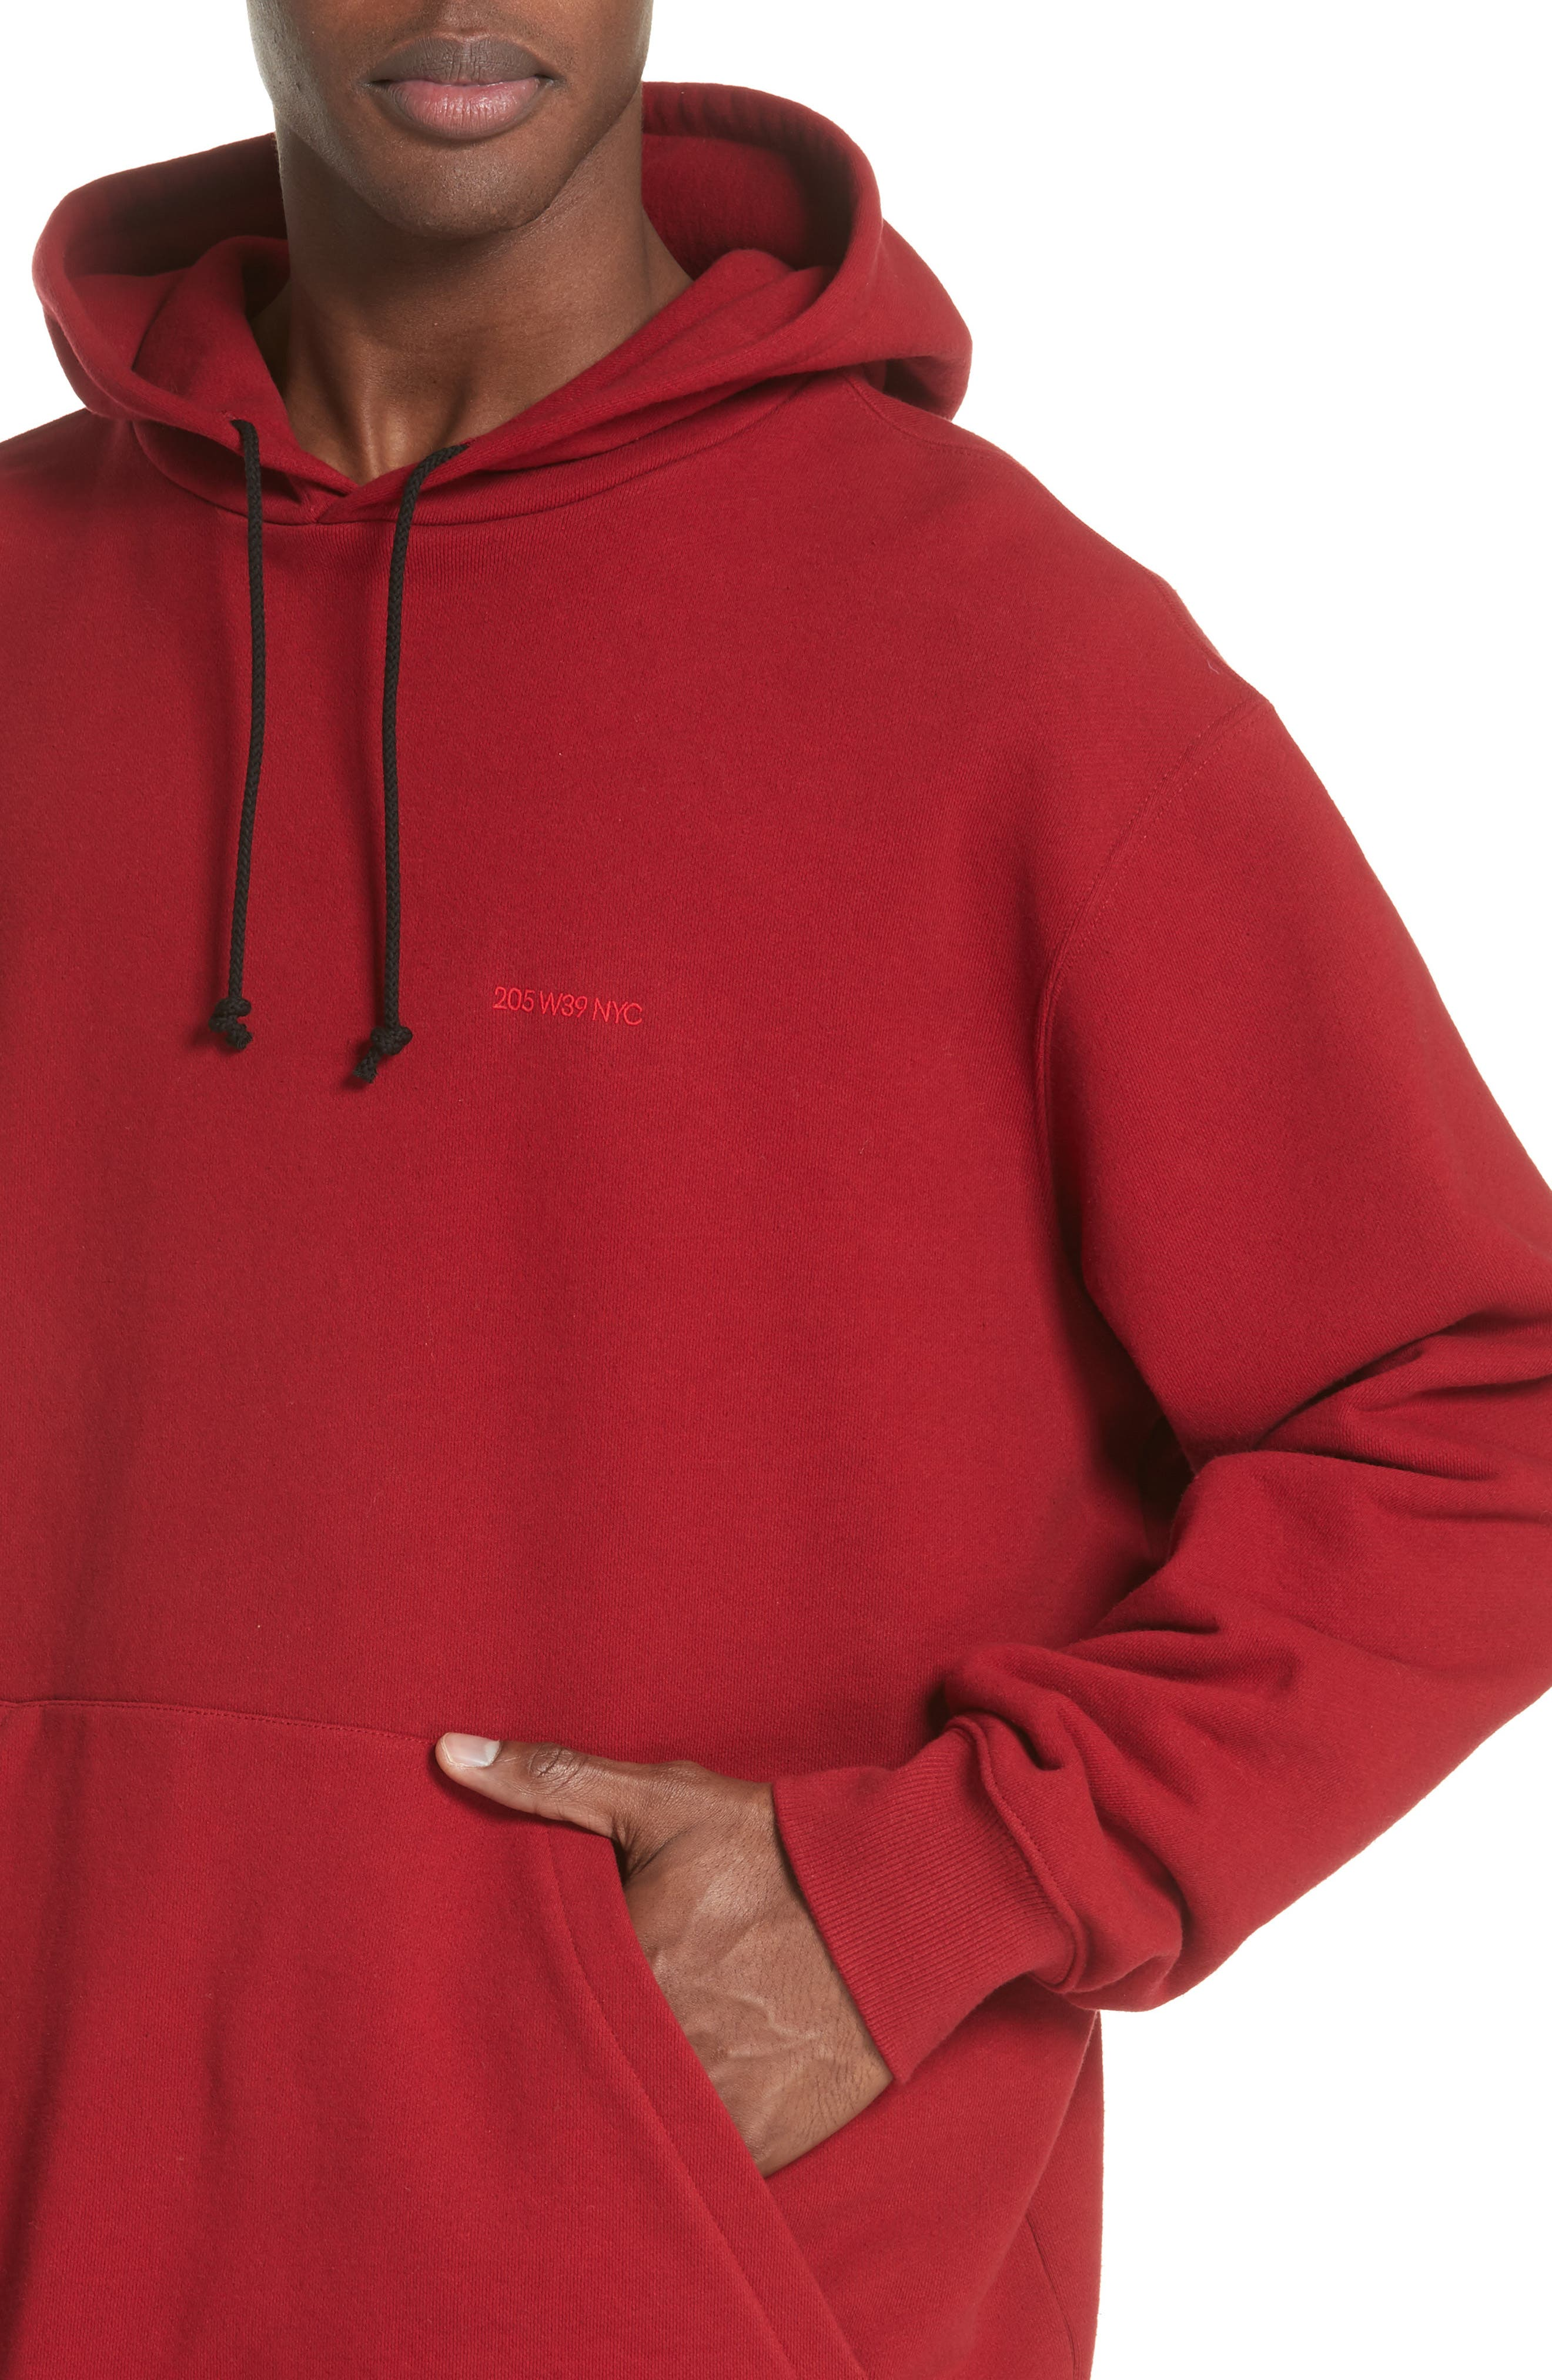 CALVIN KLEIN 205W39NYC,                             Oversize Hoodie,                             Alternate thumbnail 4, color,                             602